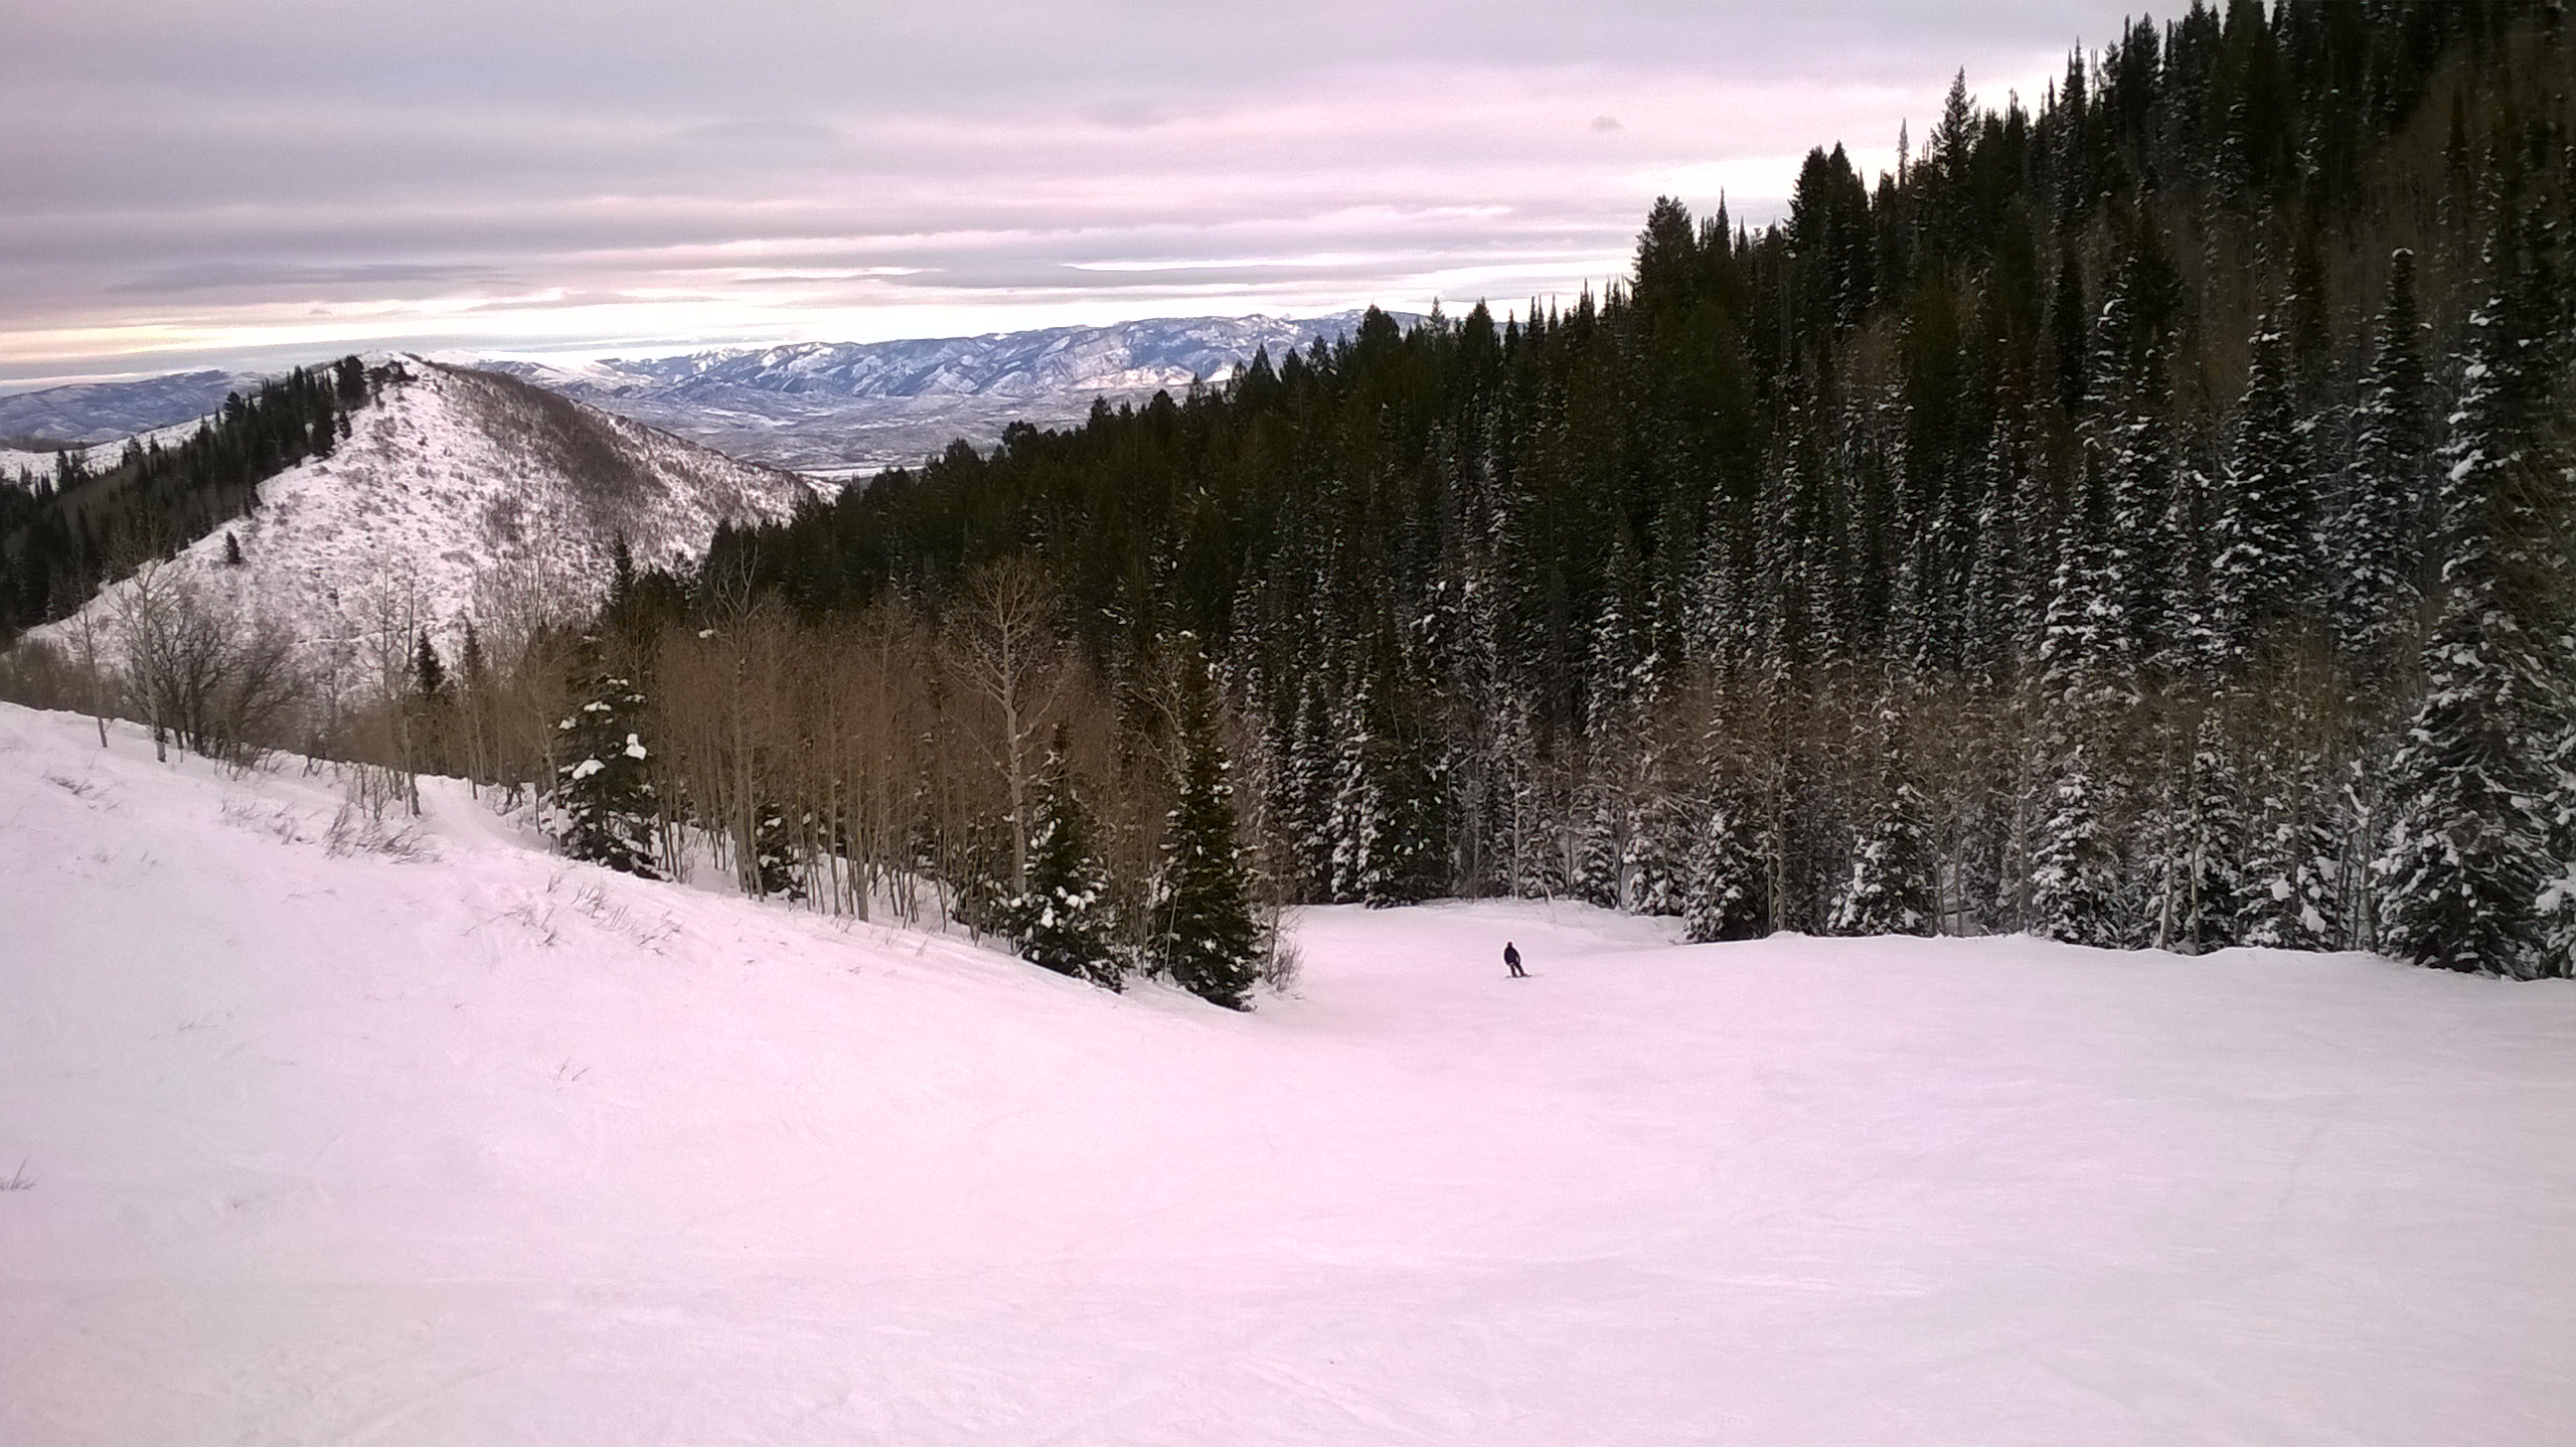 View from ski trail at The Canyons